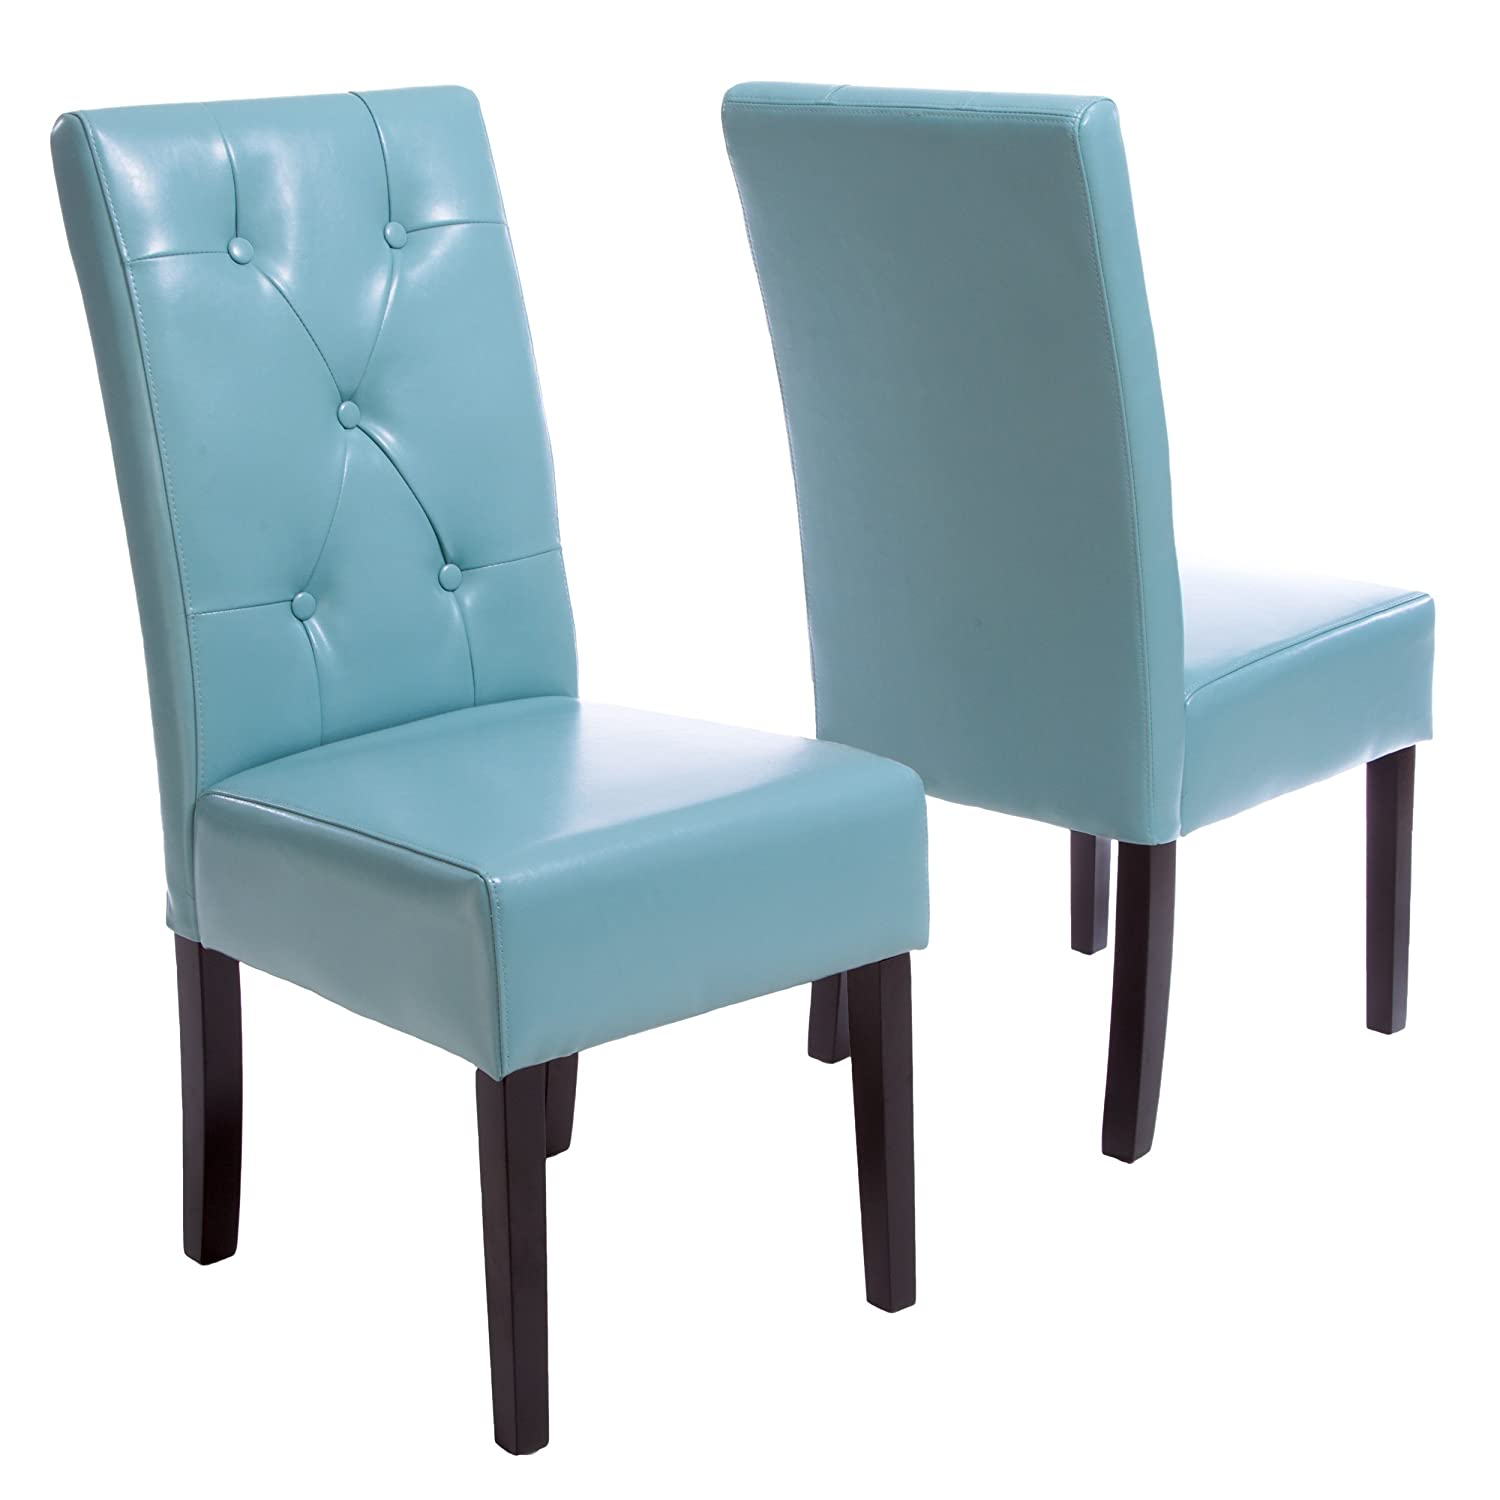 Amazon Alexander Teal Bonded Leather Dining Chair Set of 2